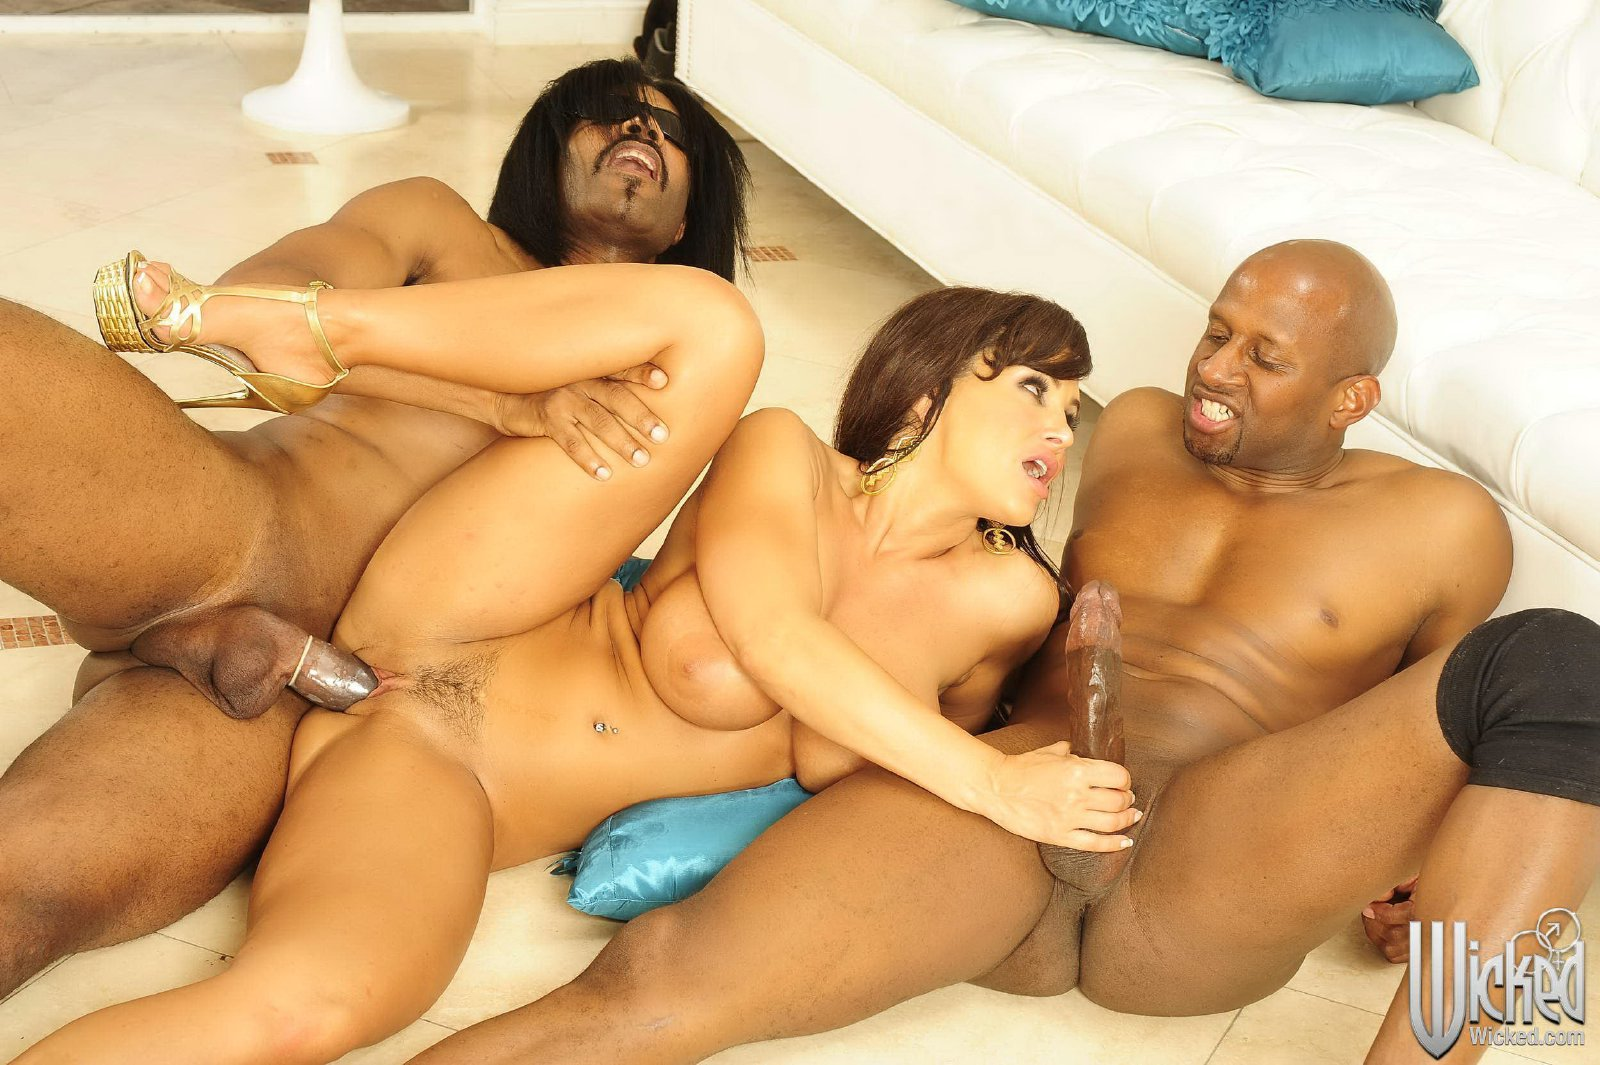 Horny Interracial Guys Banging